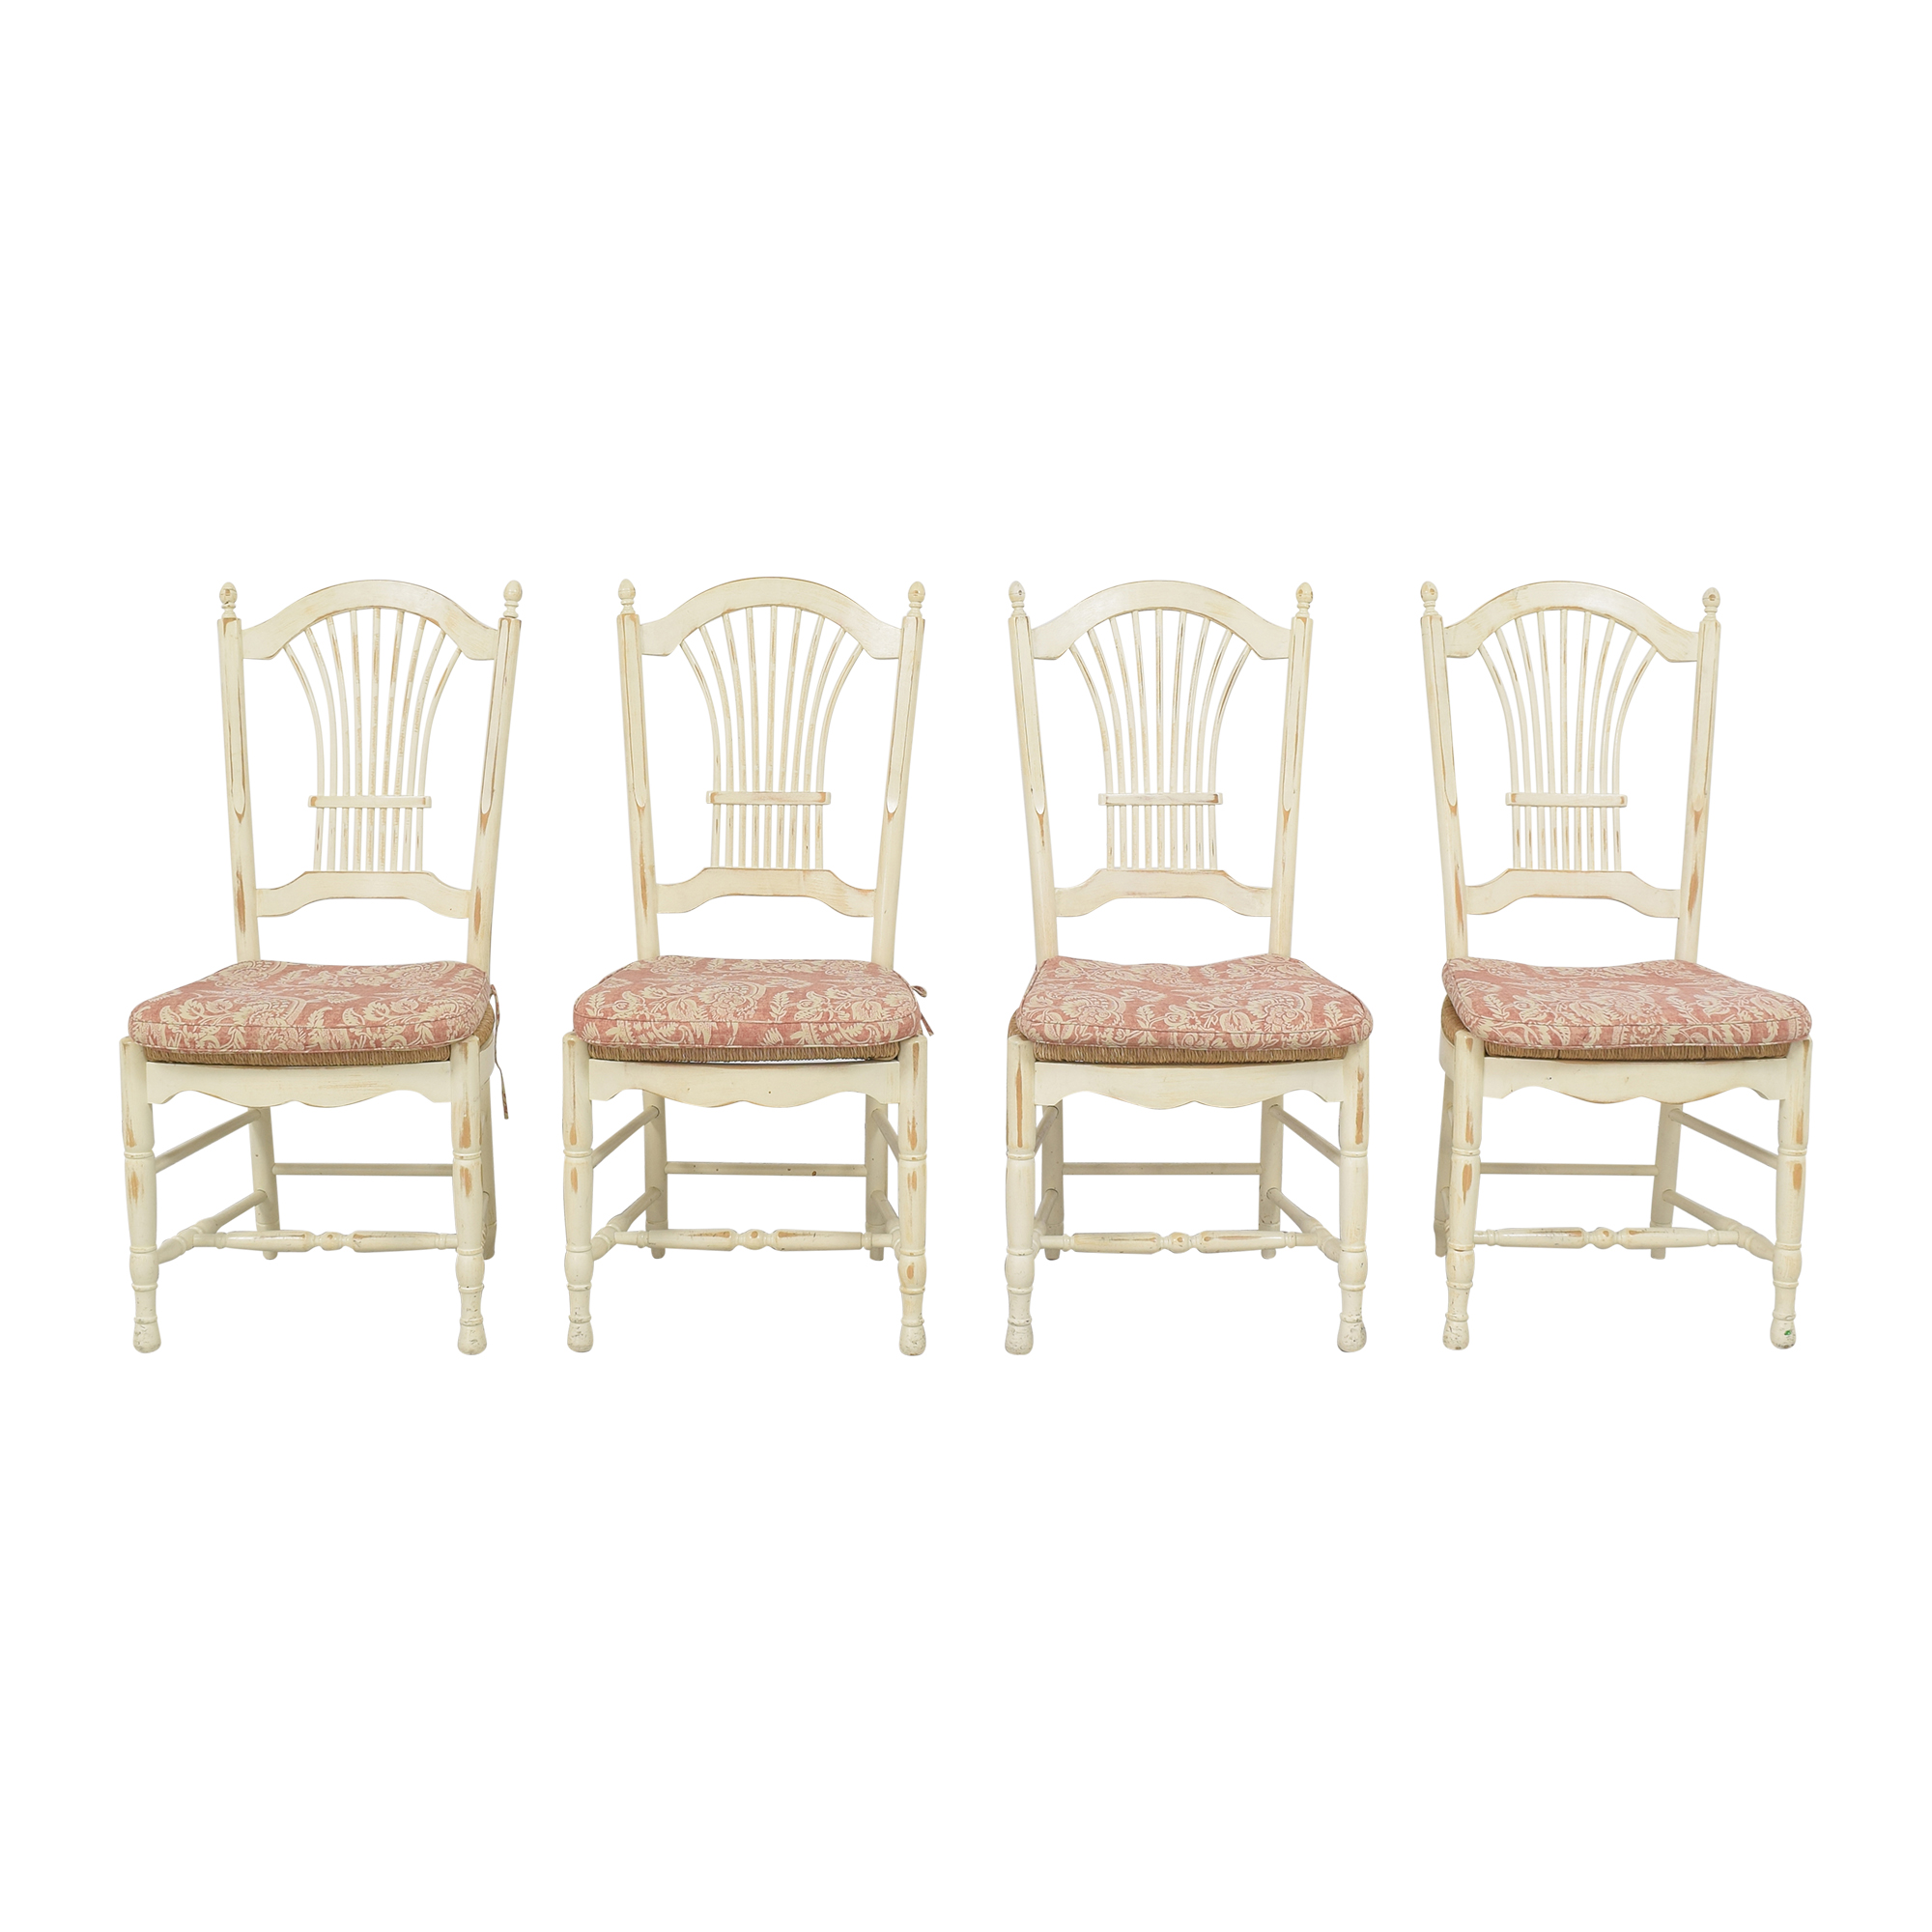 Rustic-Style Dining Side Chairs on sale